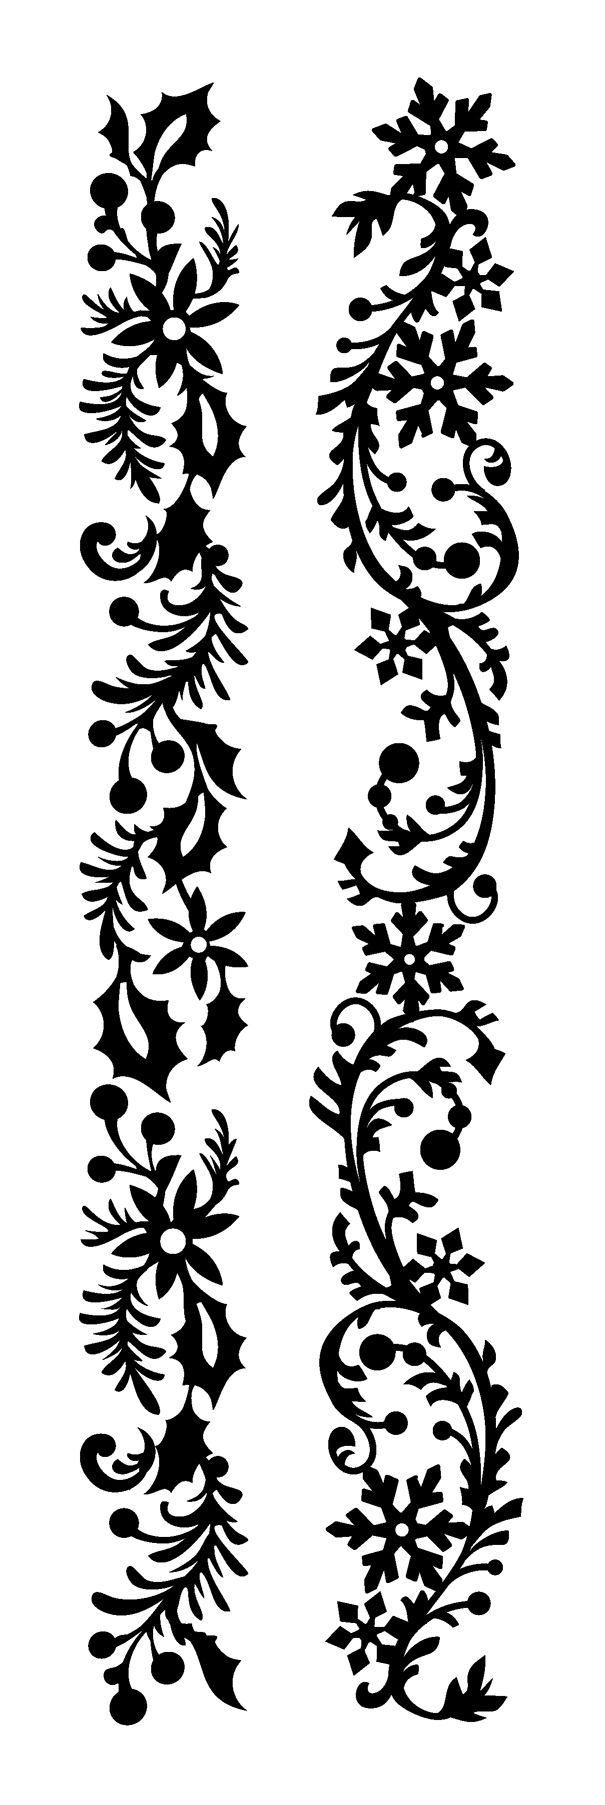 Holly garland. Snowflake garland. Silhouette for cutting